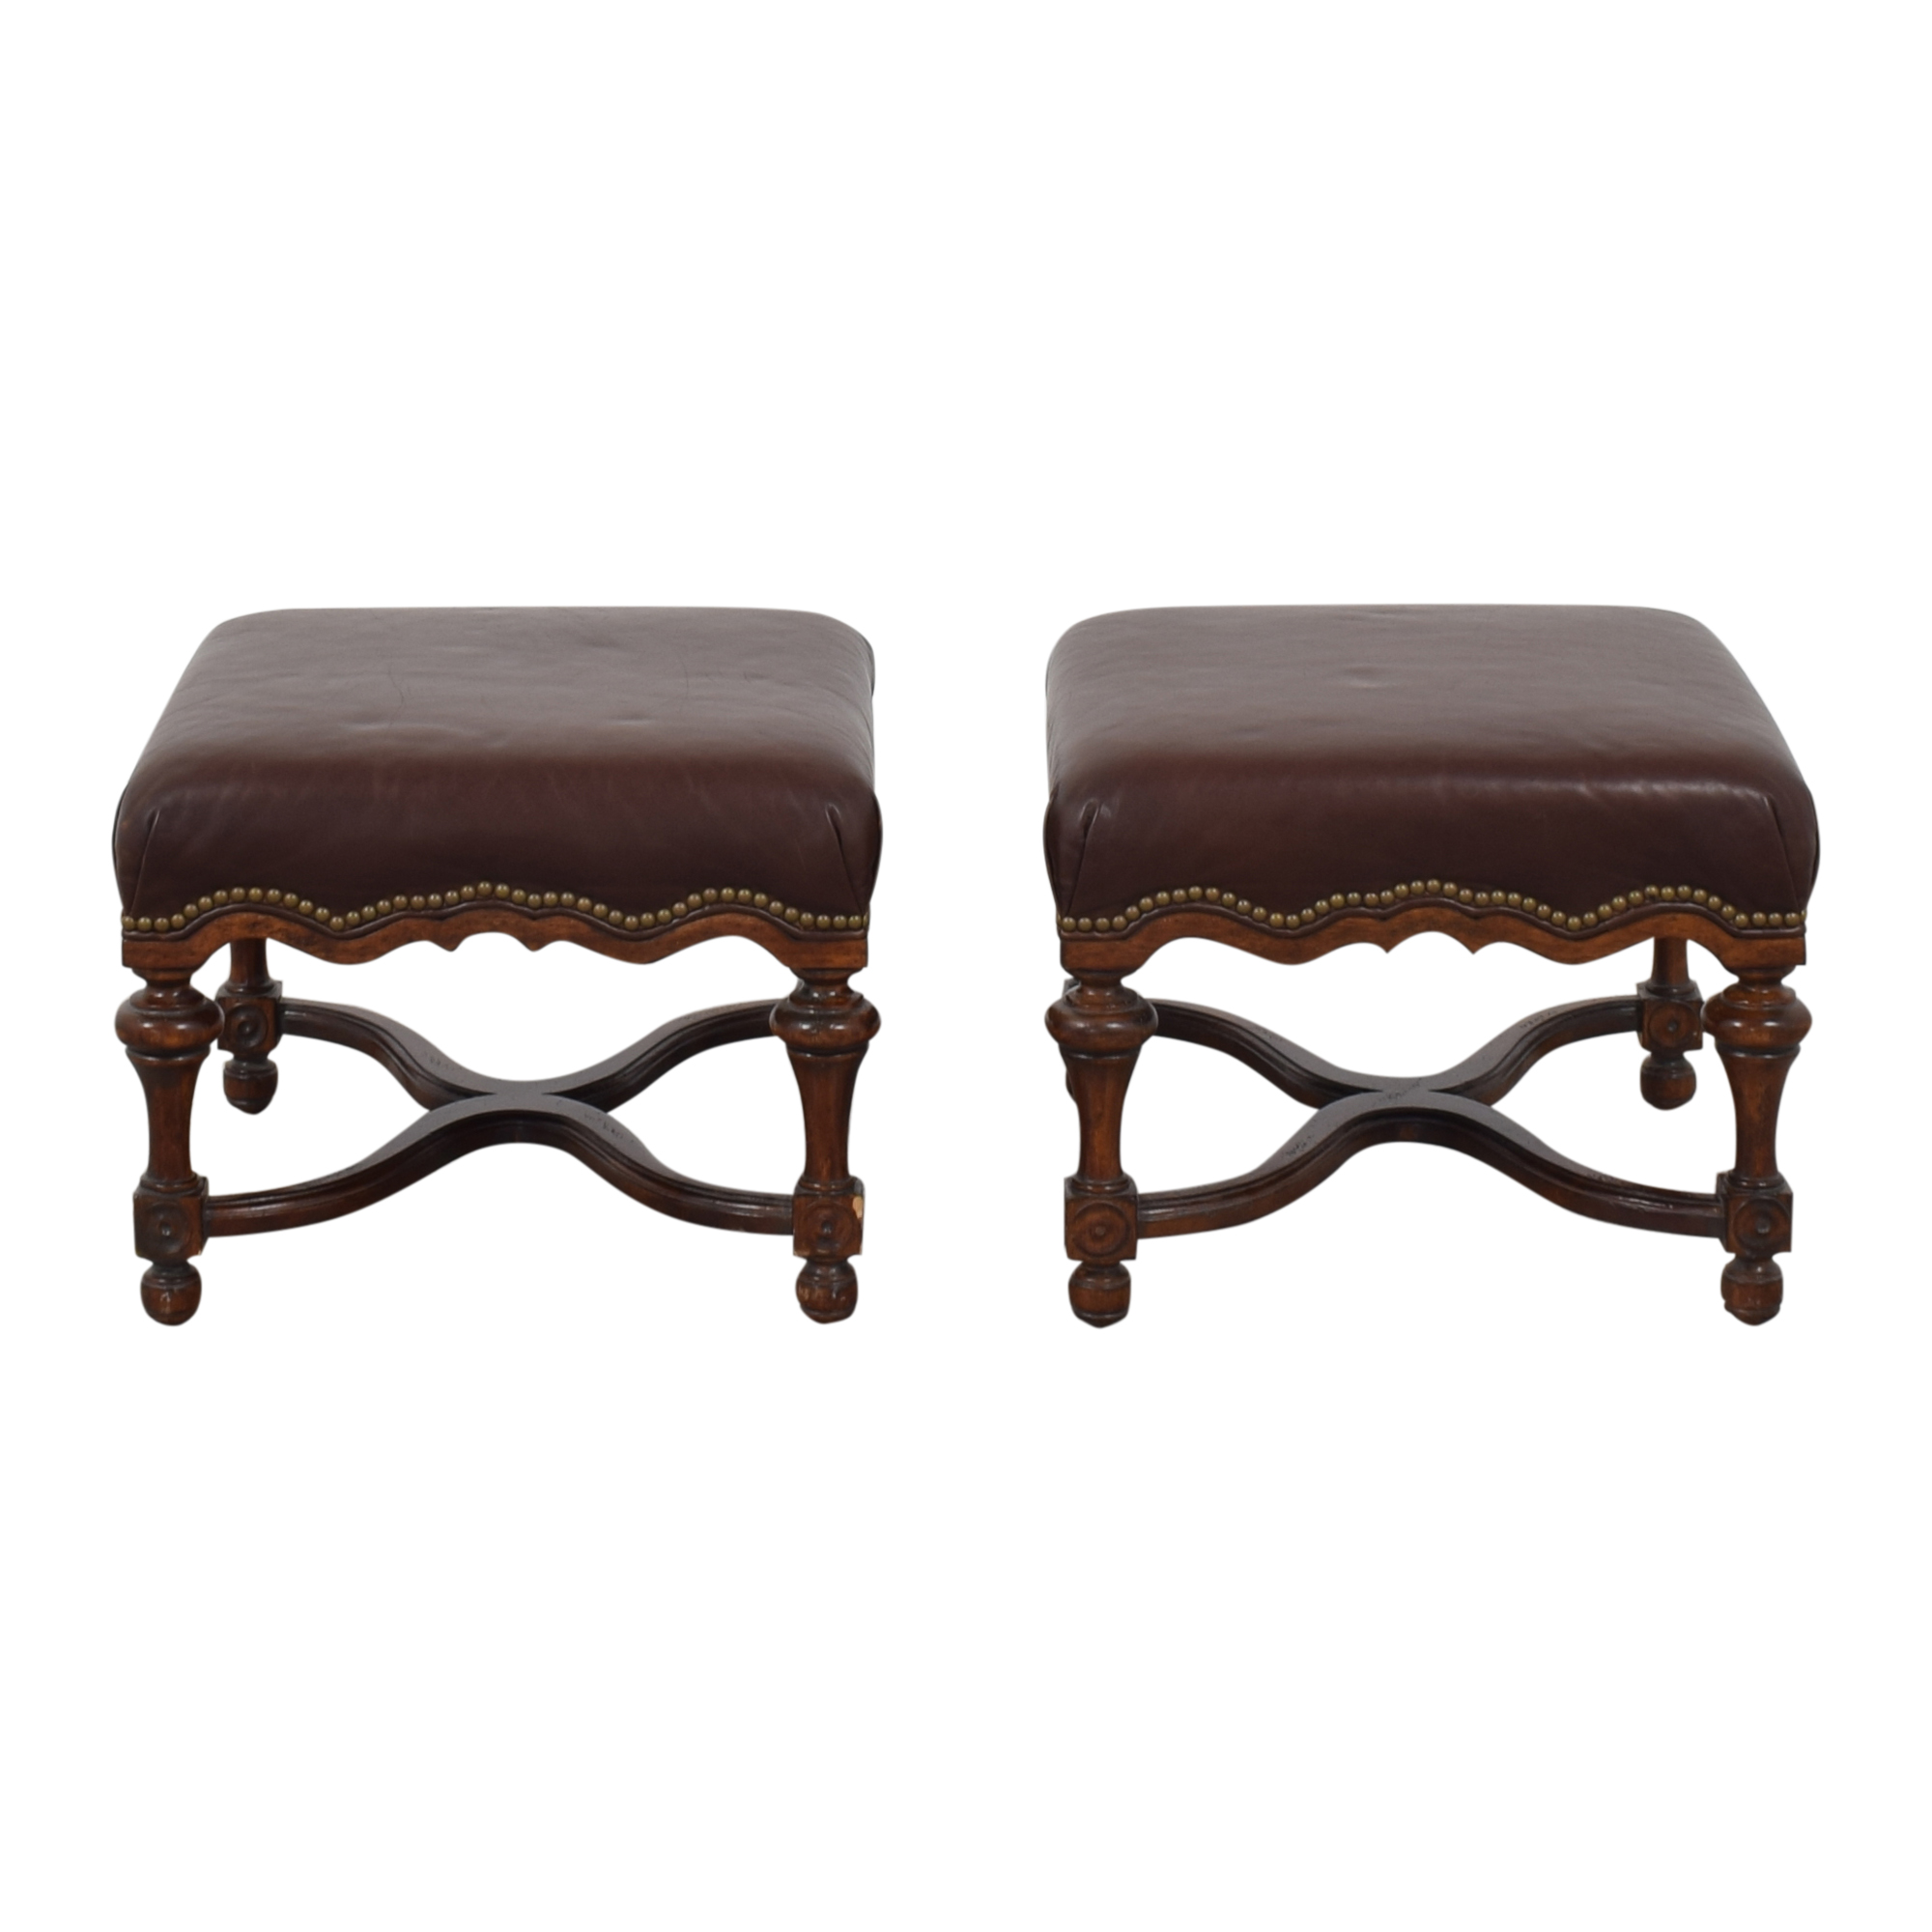 WHL Collections WHL Collections Nailhead Ottomans on sale